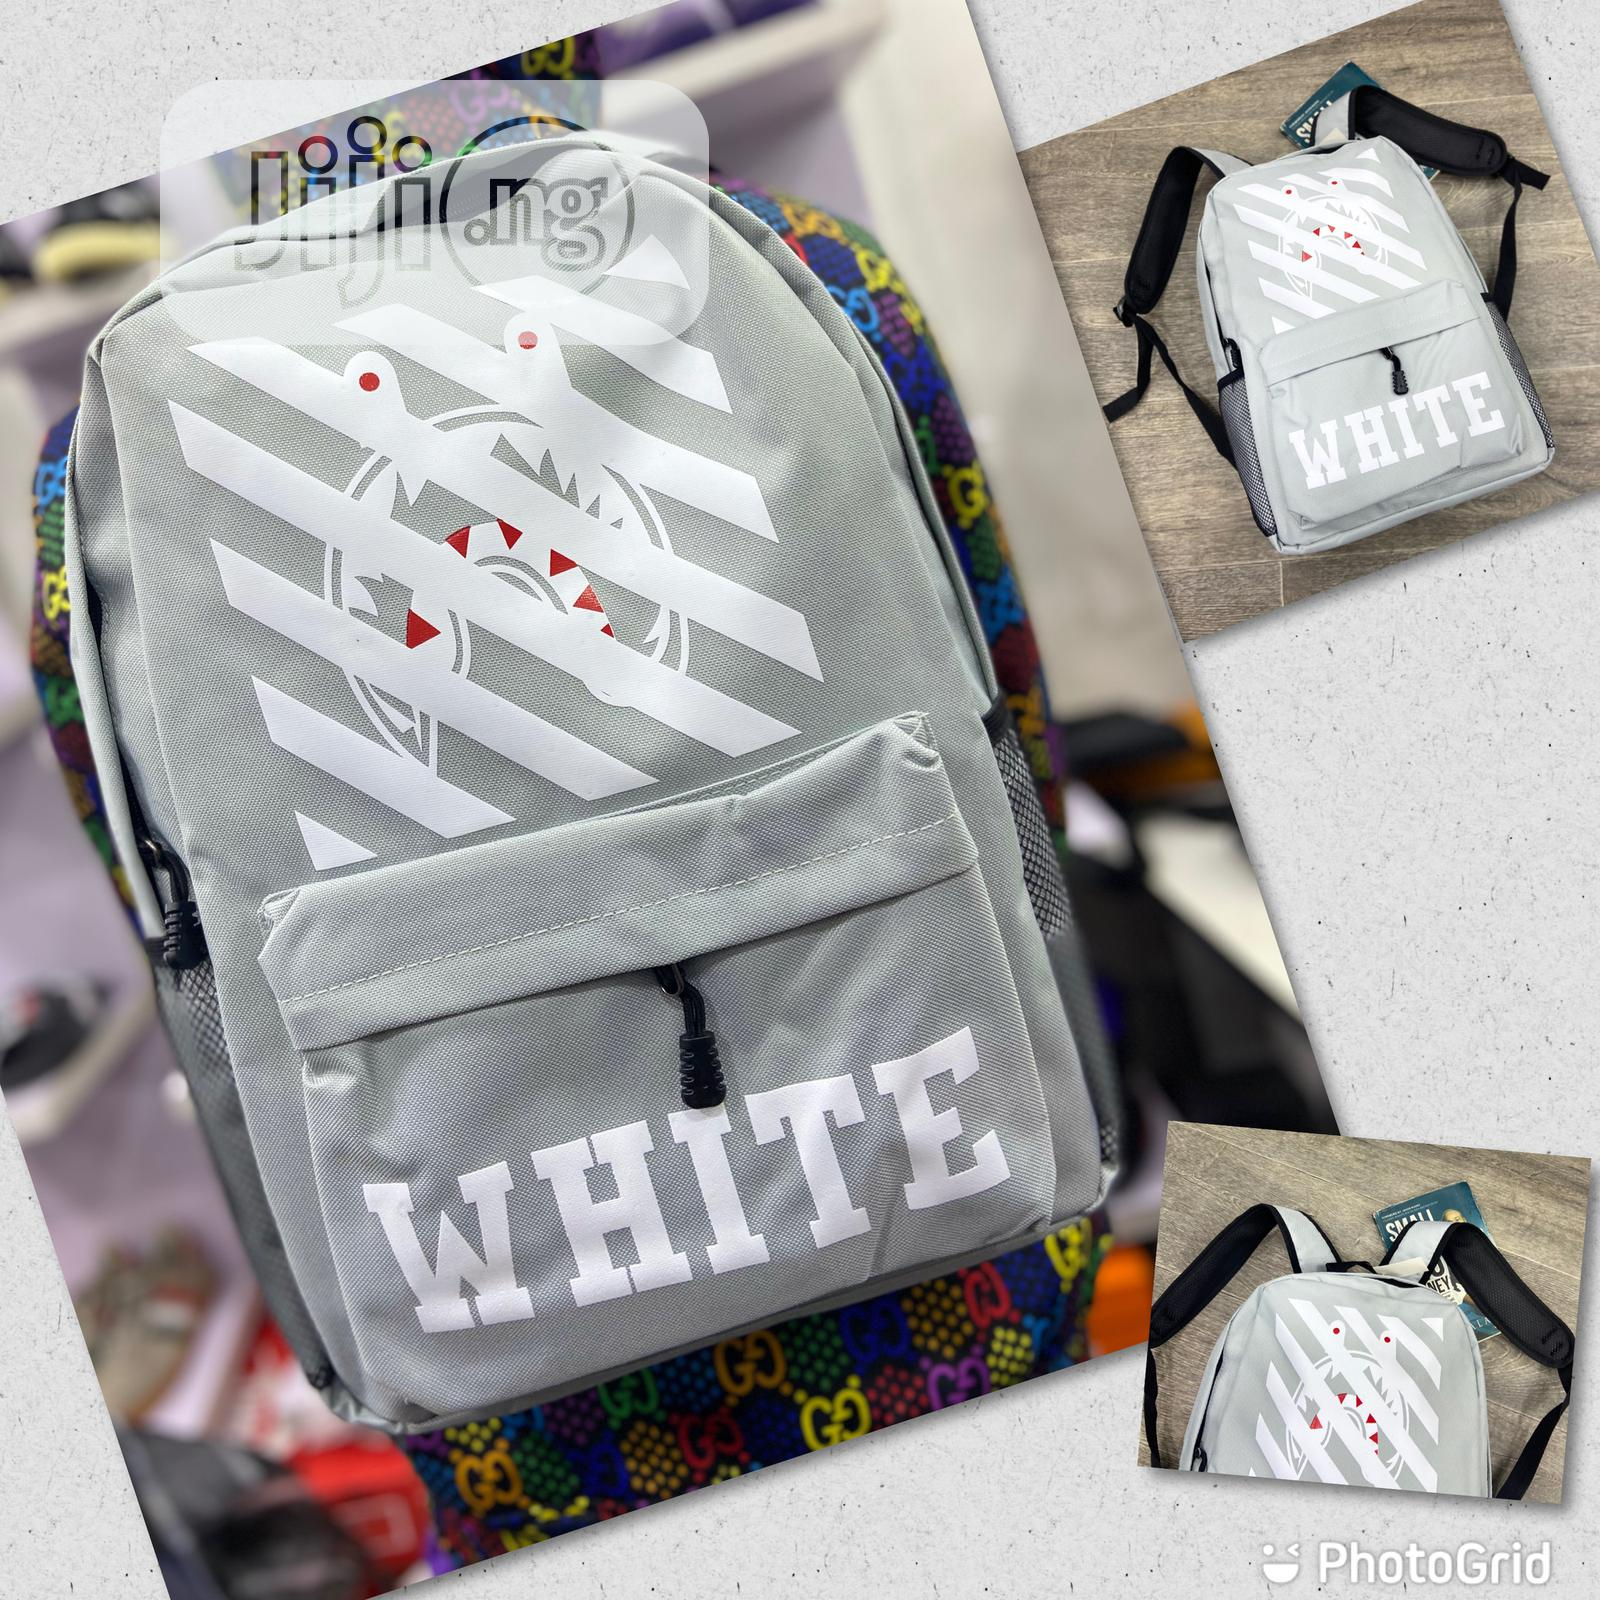 Off-White Back Pack Available as Seen